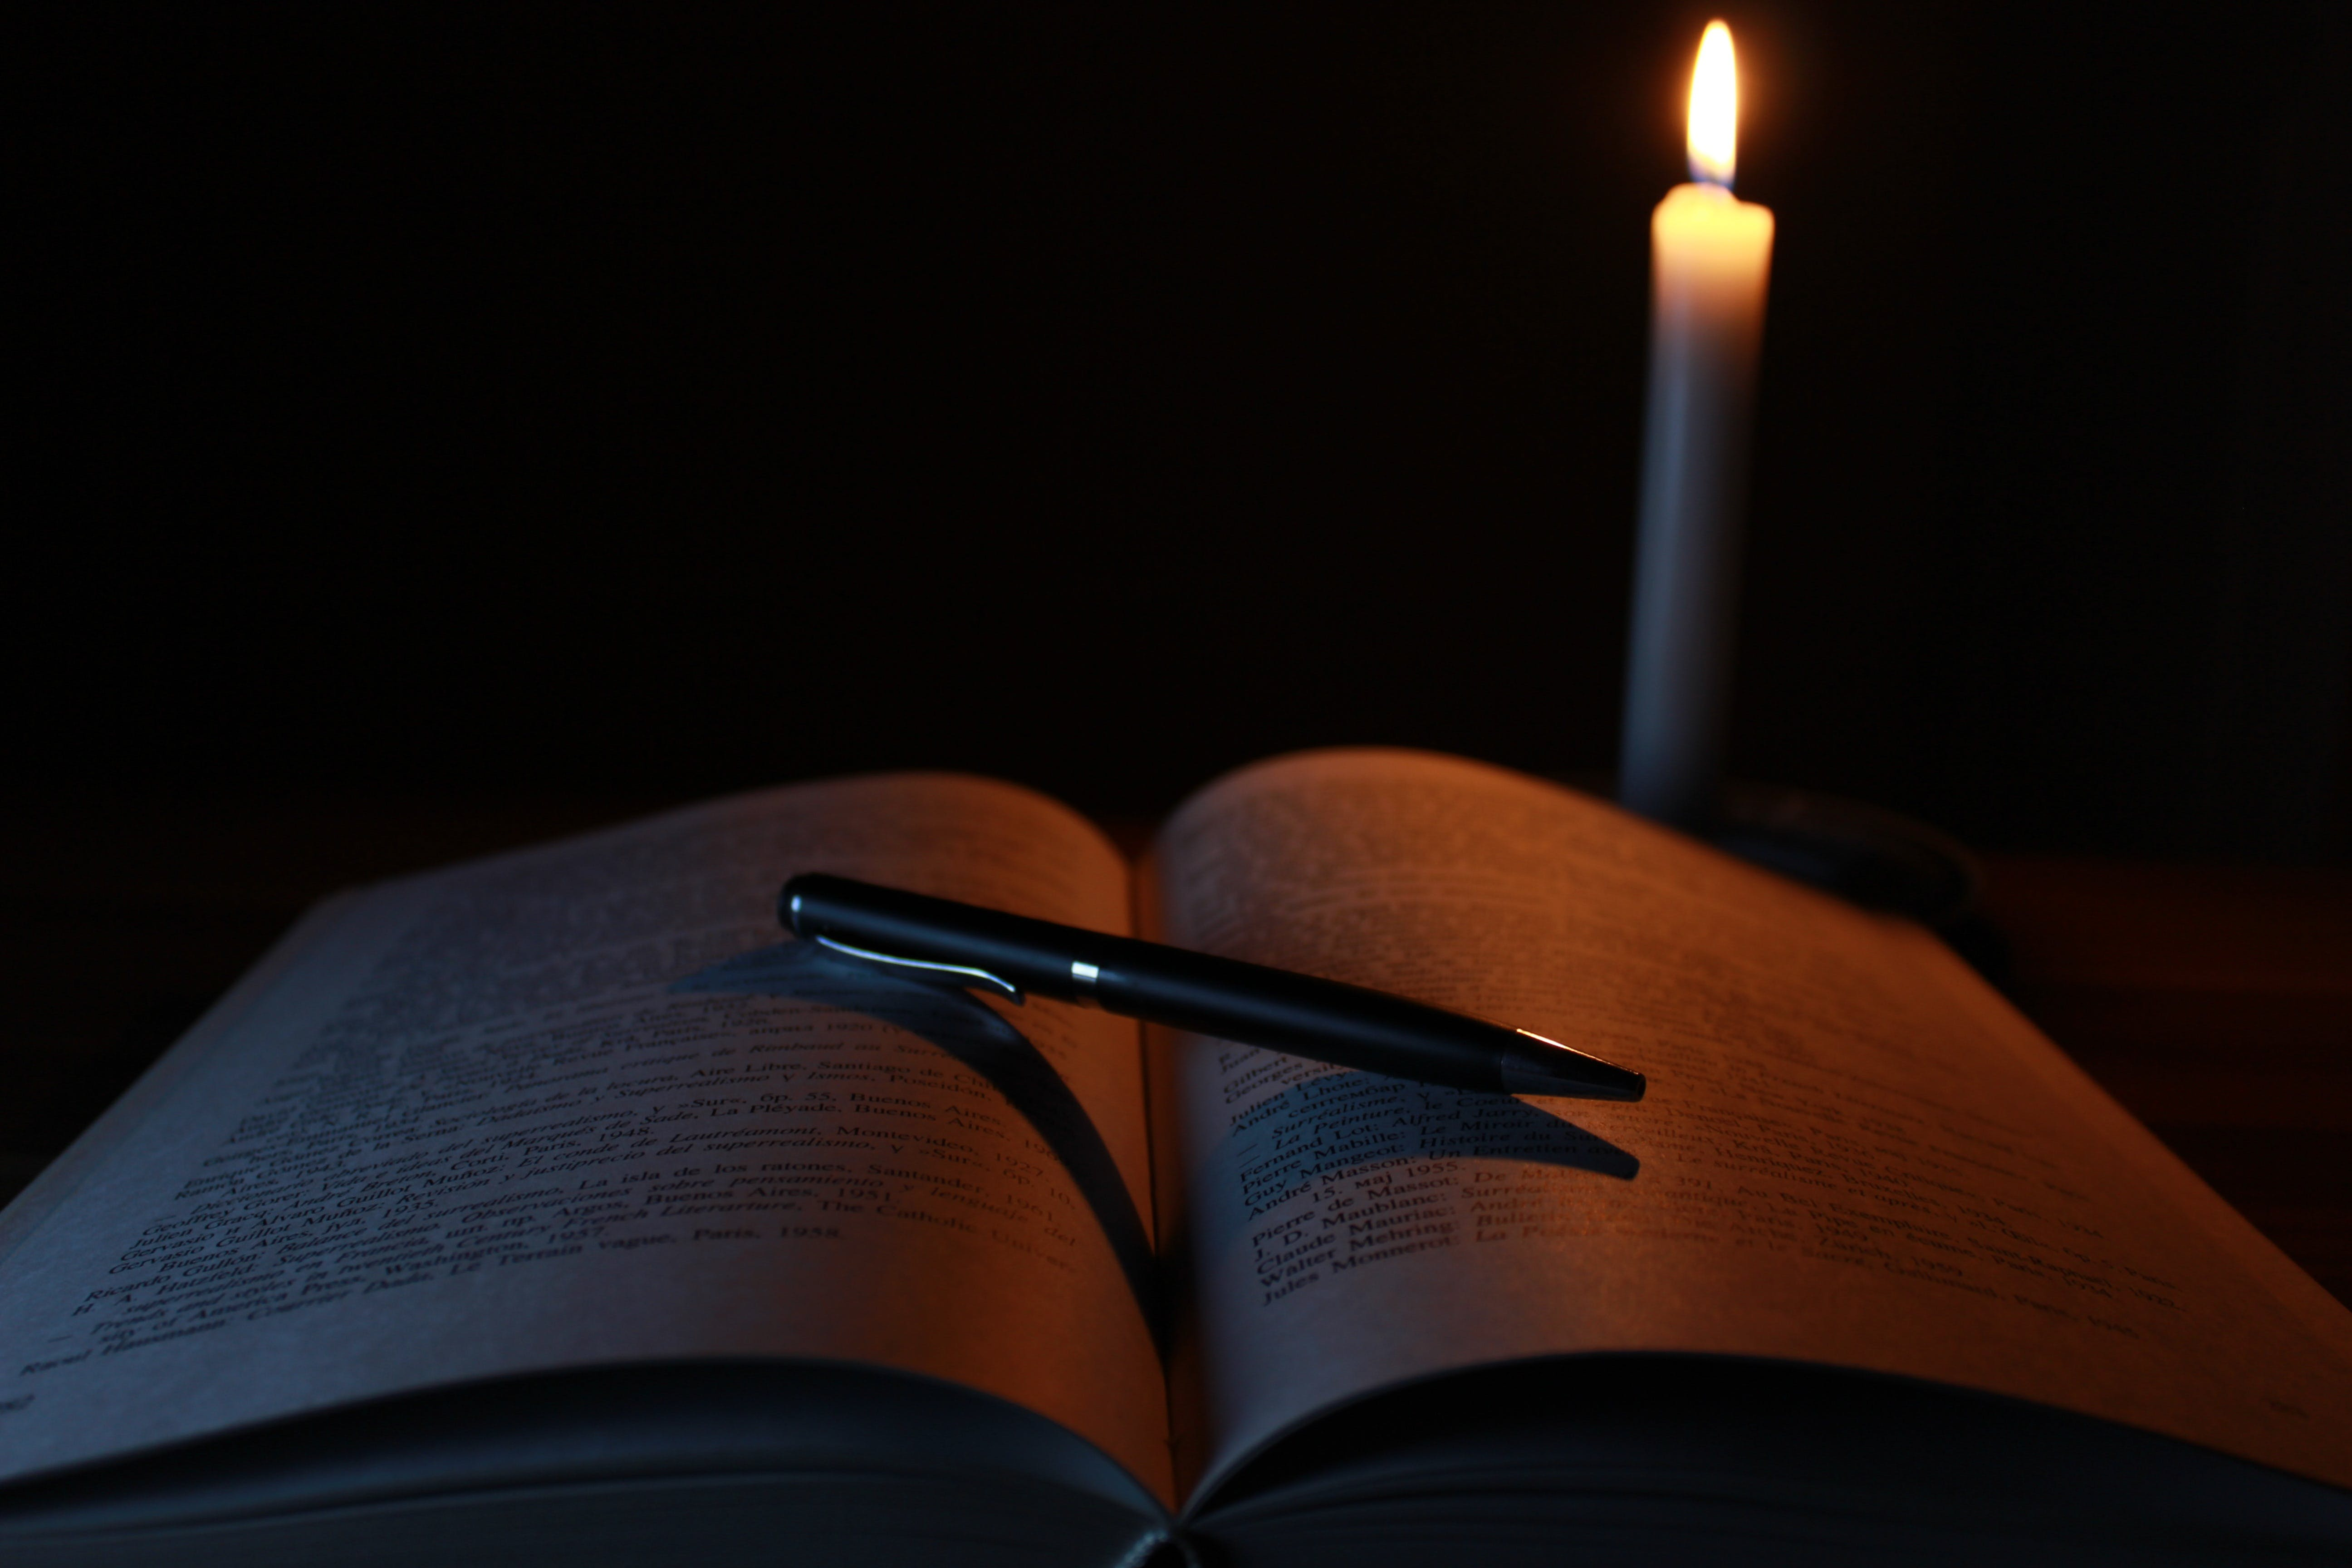 Black Pen on Opened Book Beside Lit Taper Candle